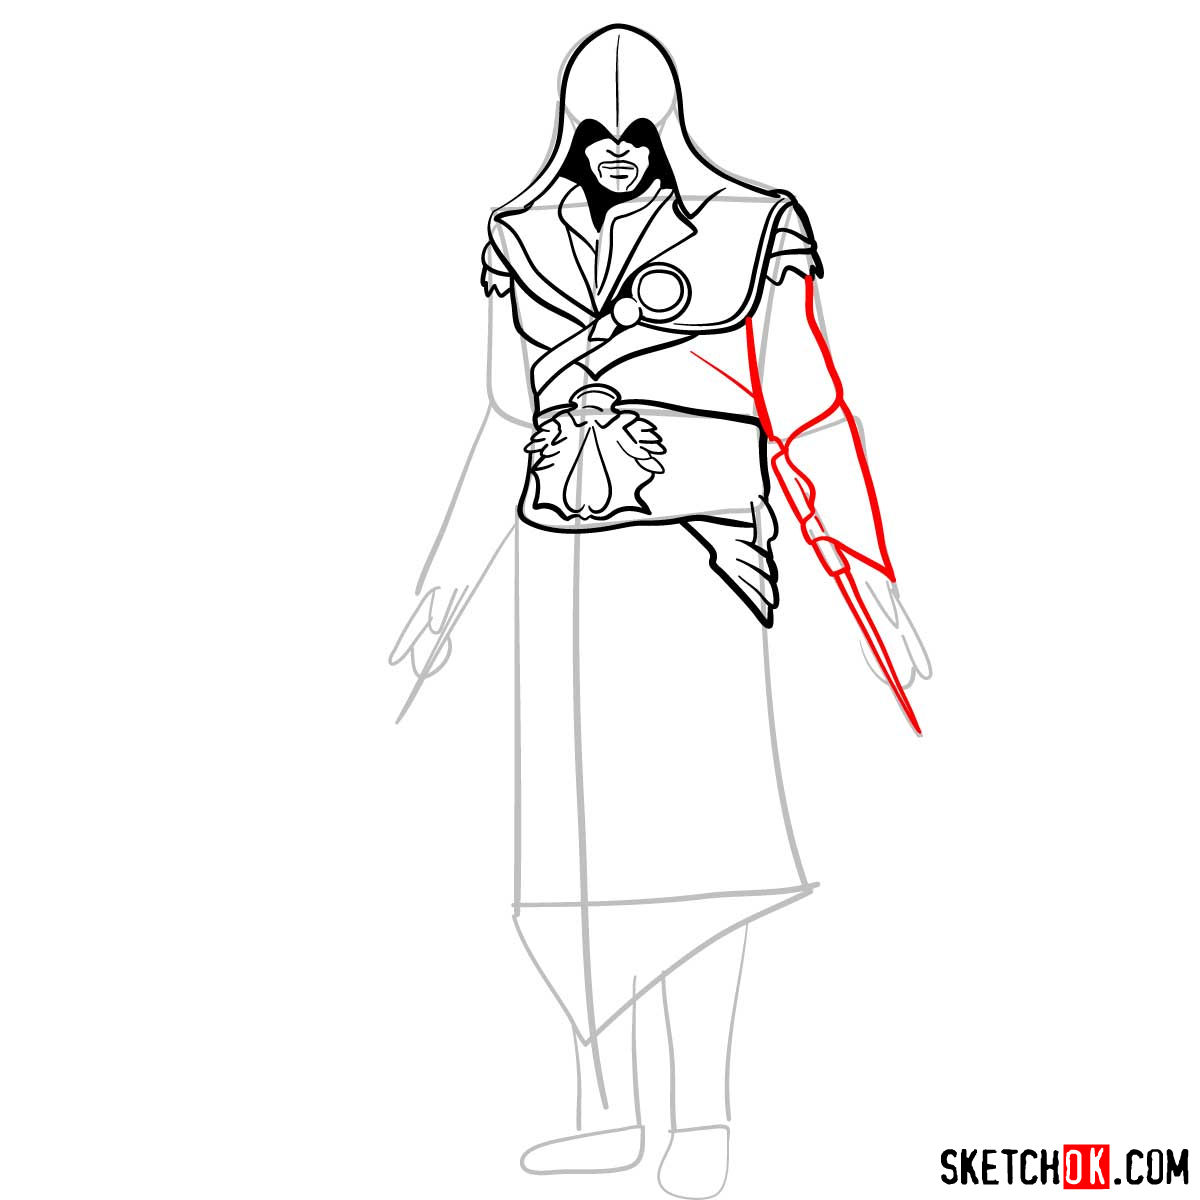 How to draw an Assassin from Assassin's Creed game - step 10